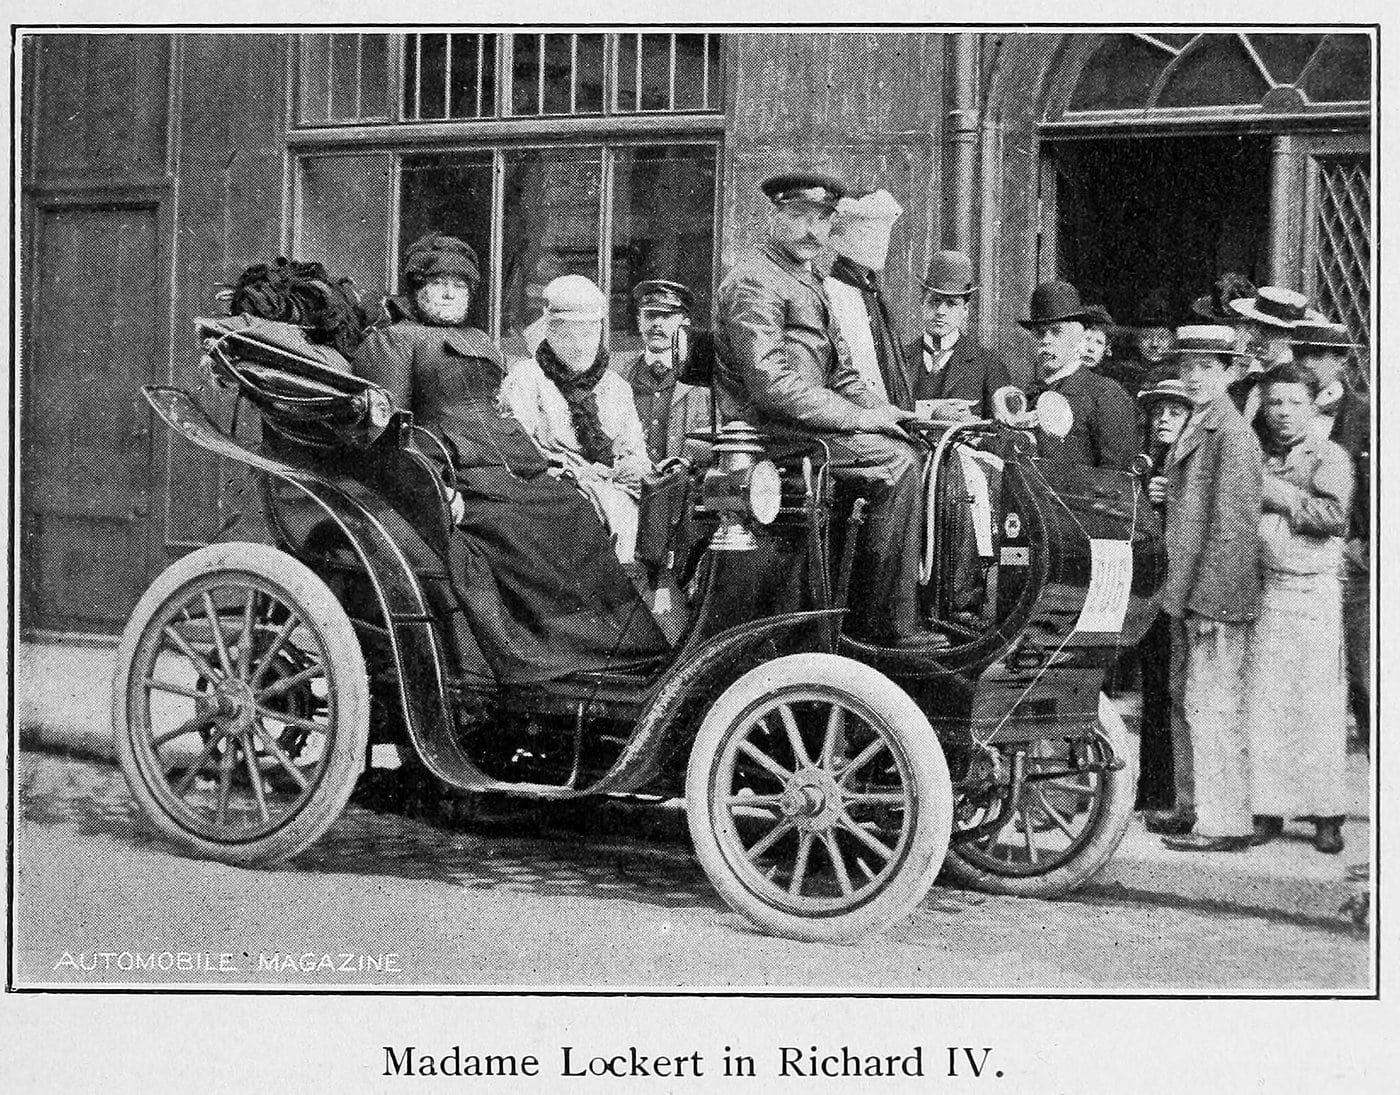 Madame Lockert in Richard IV. (1902)